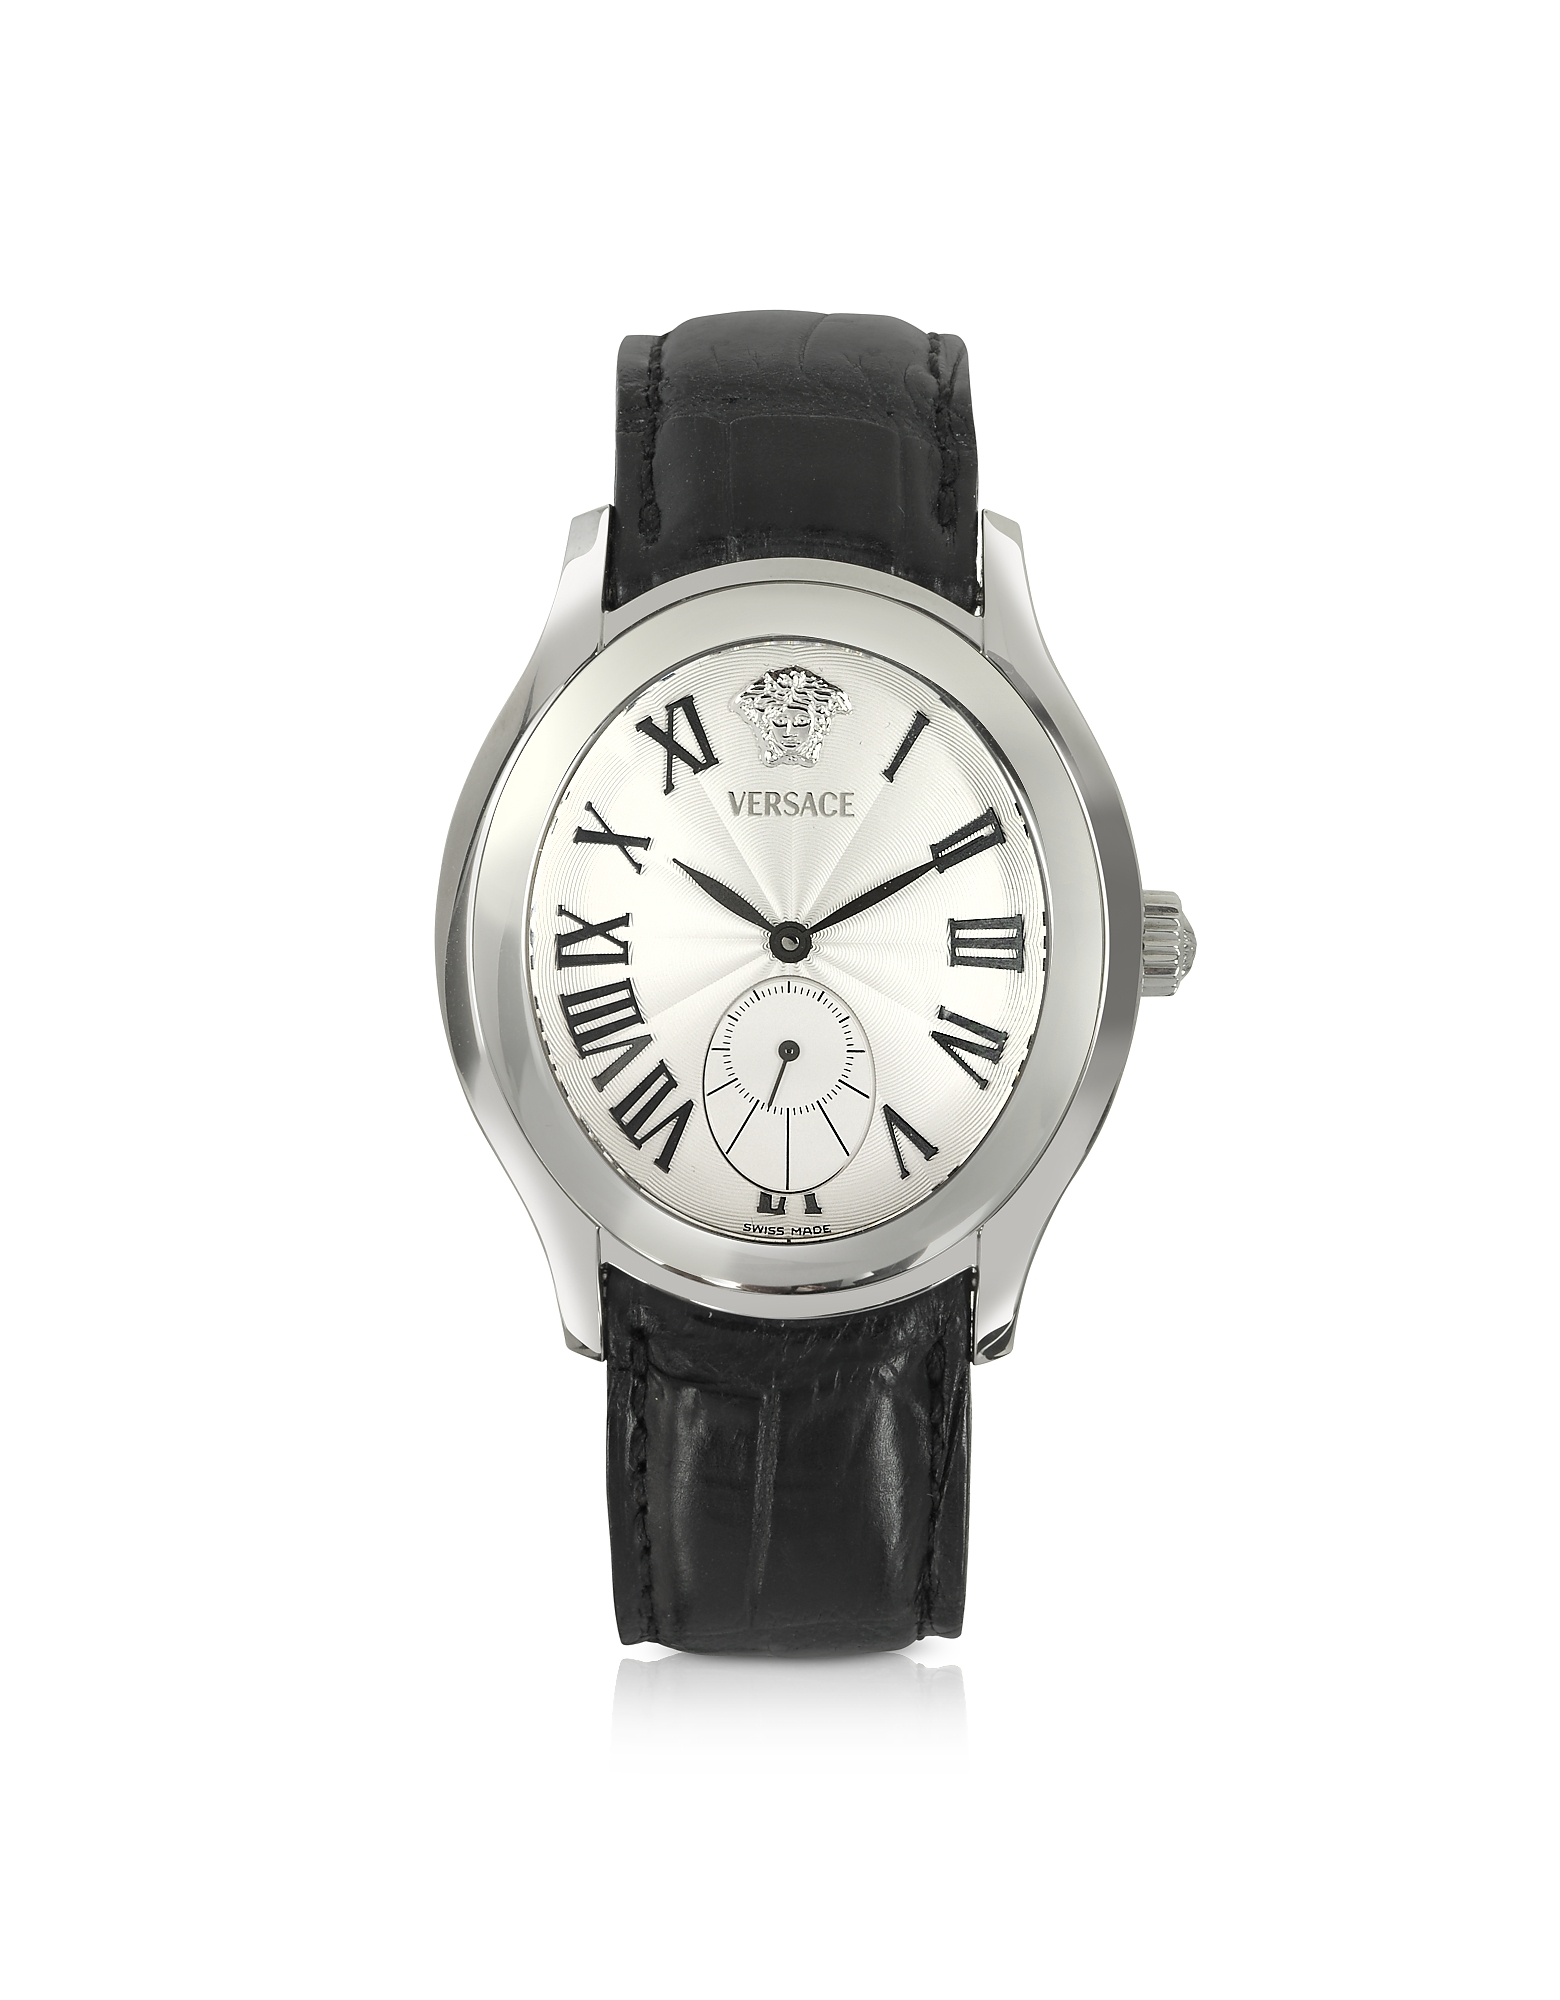 Versace Men's Watches, Bond Street -Men's Black Crocodile Leather Watch